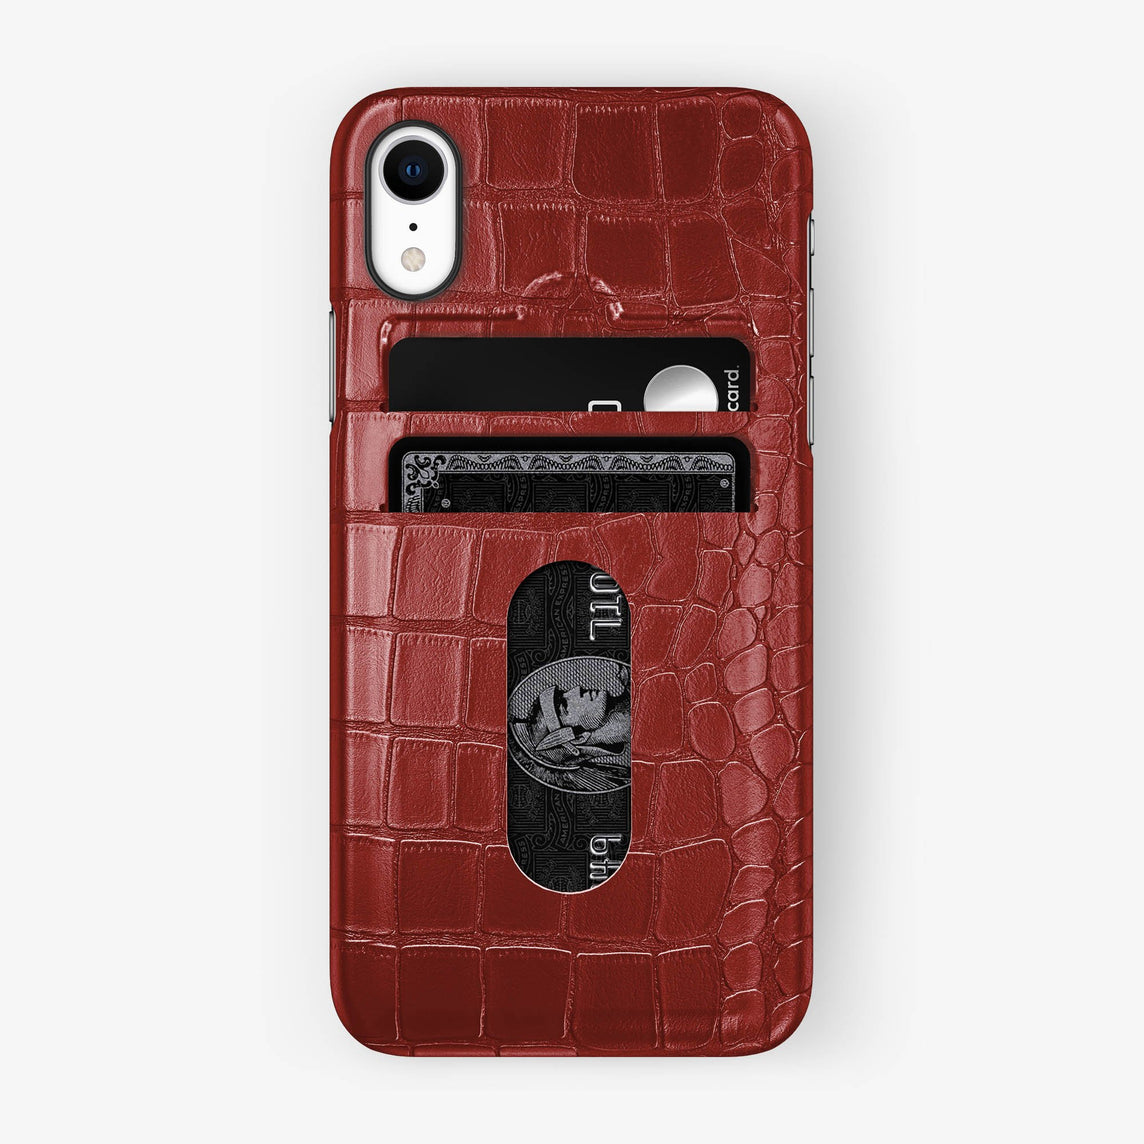 Alligator [iPhone Card Holder Case] [model:iphone-xr-case] [colour:red] [finishing:black]